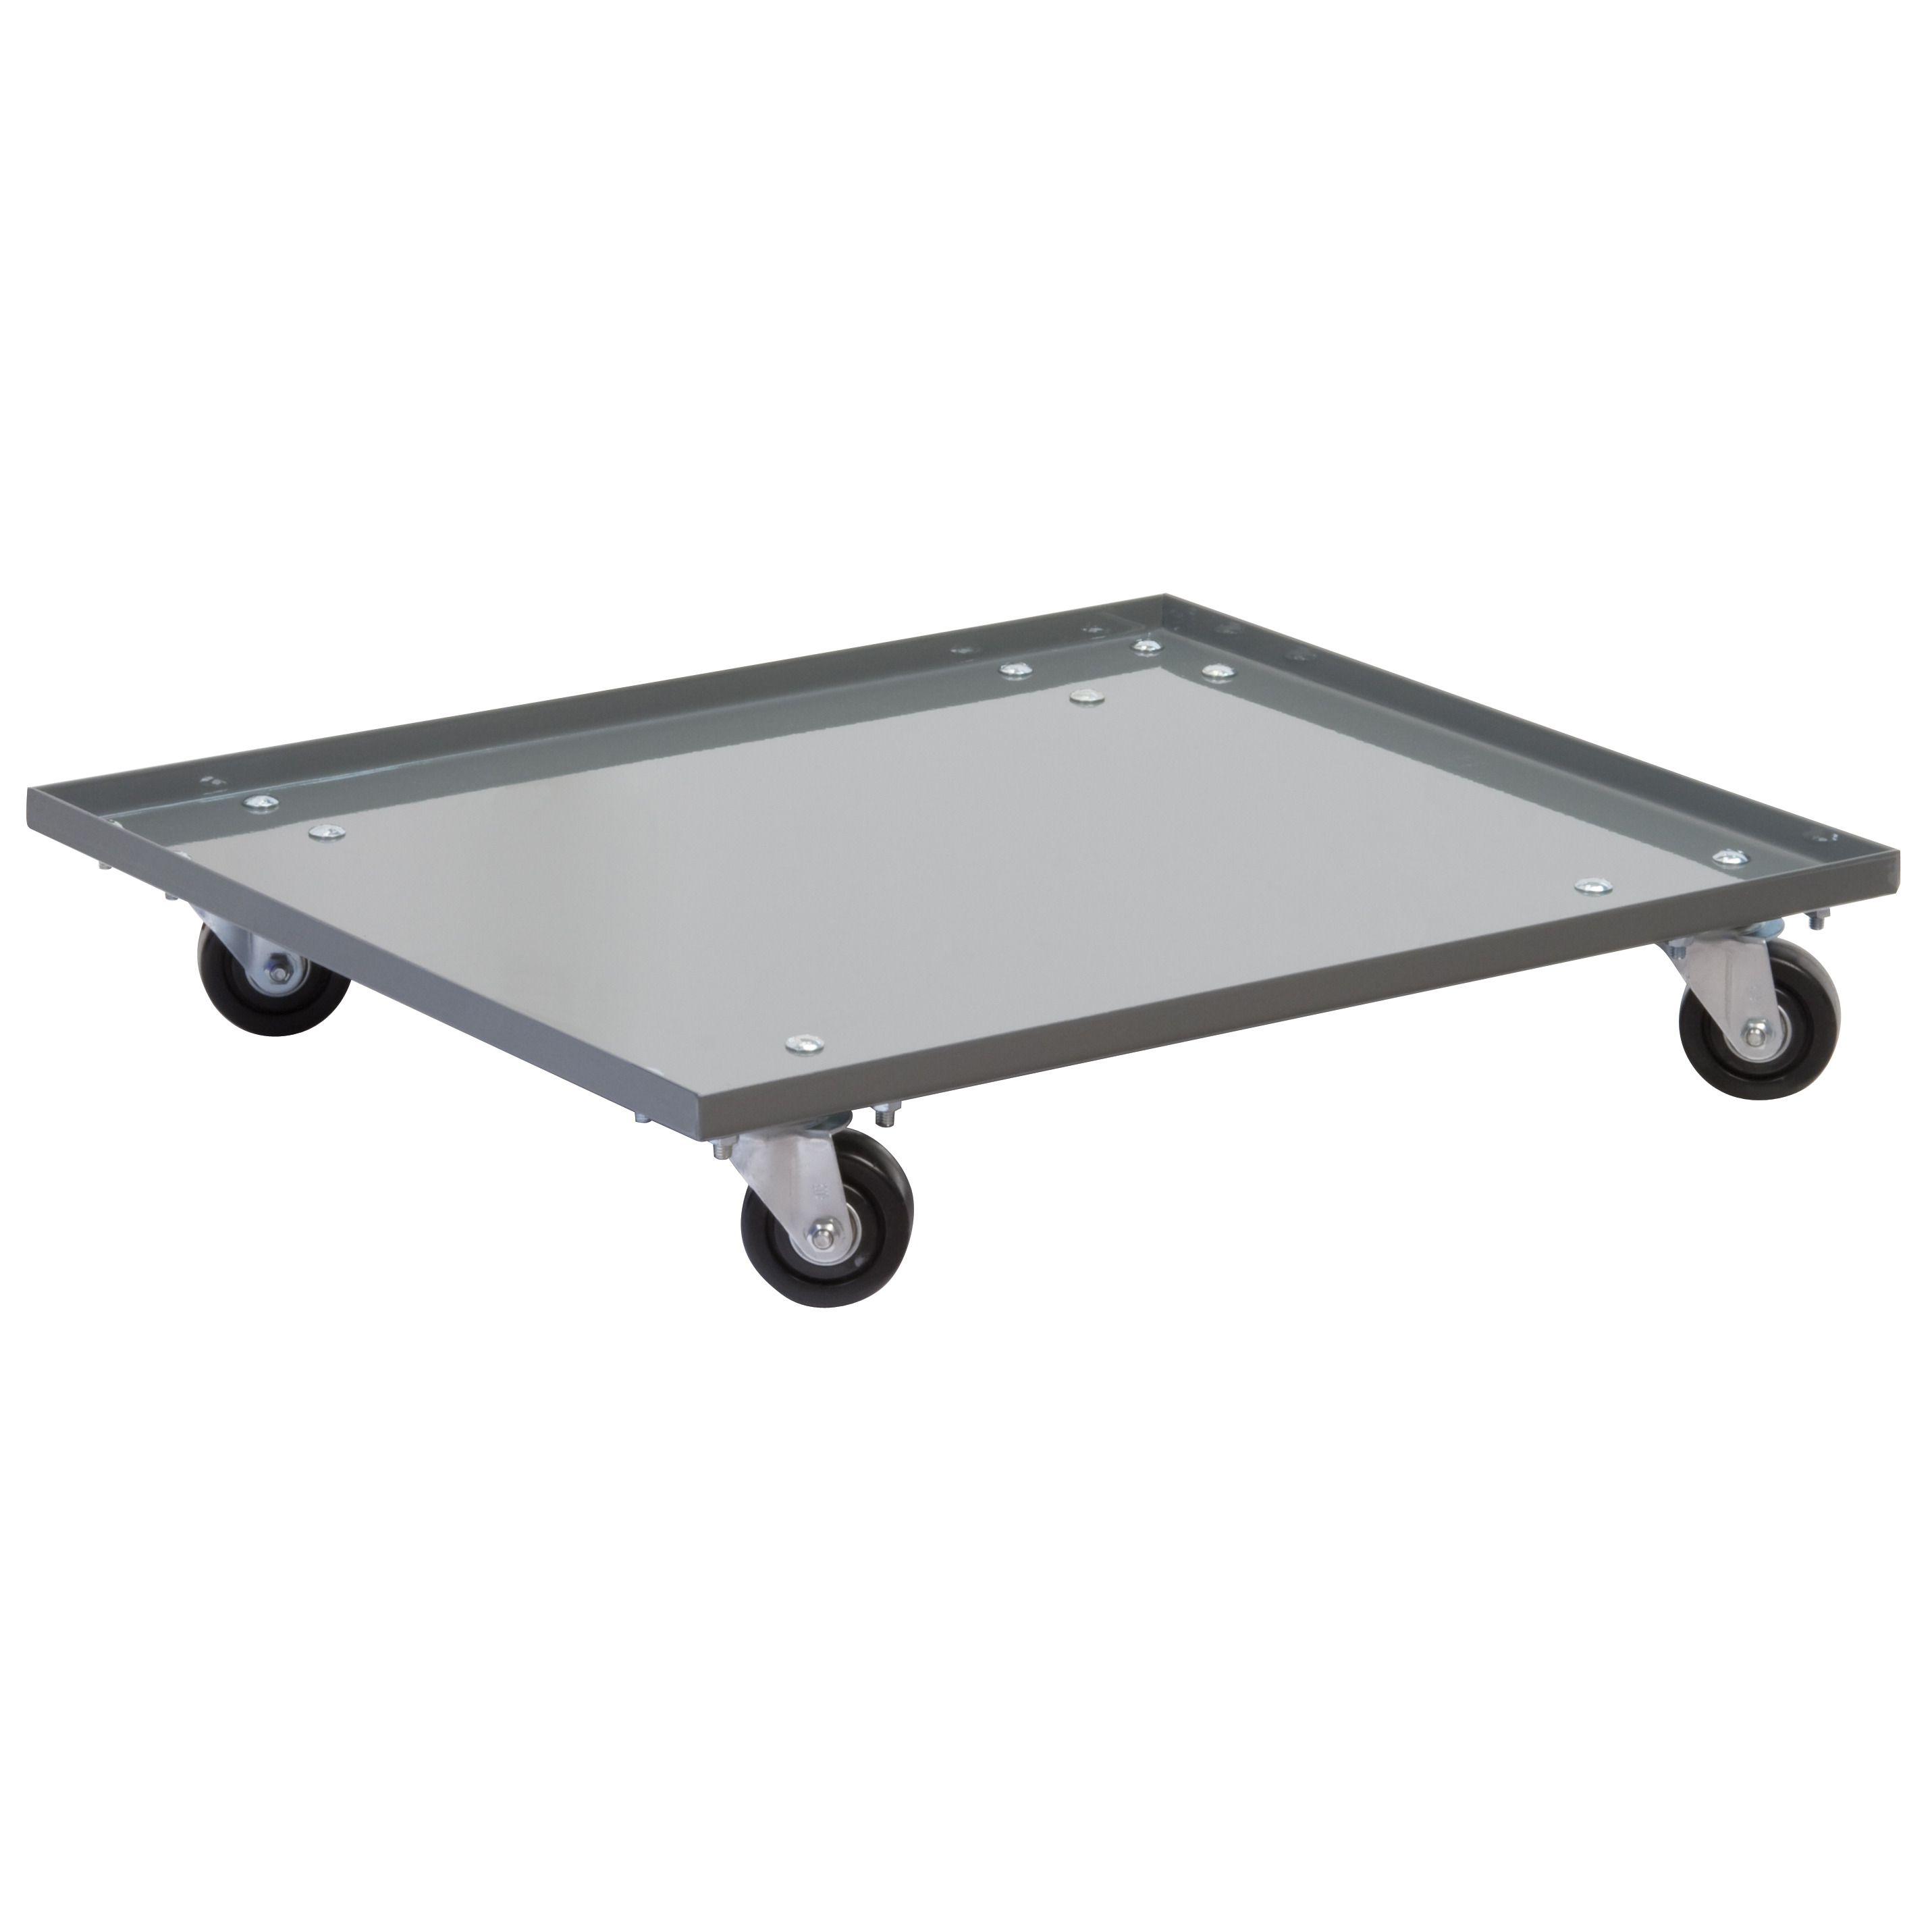 Item DISCONTINUED by Manufacturer.  Steel Dolly, 22x27, N/A3